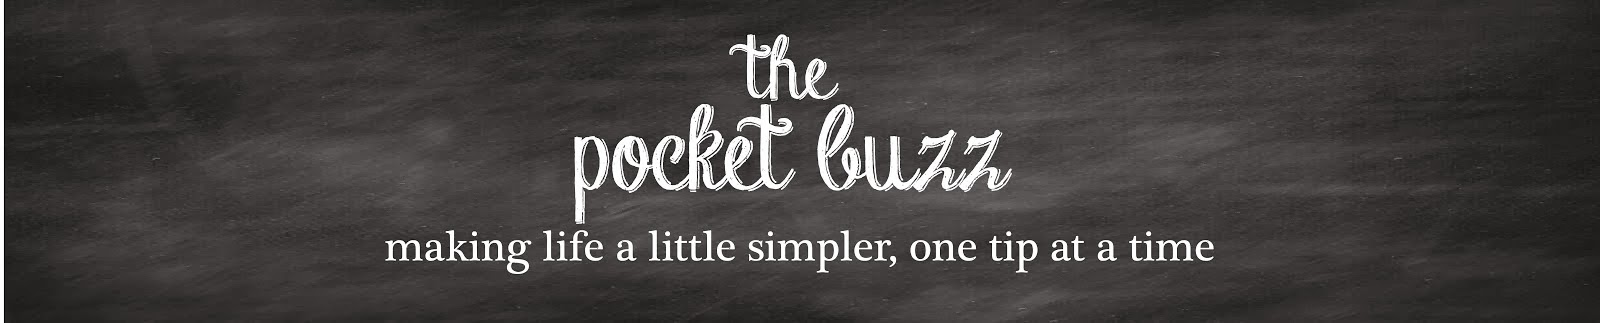 The Pocket Buzz